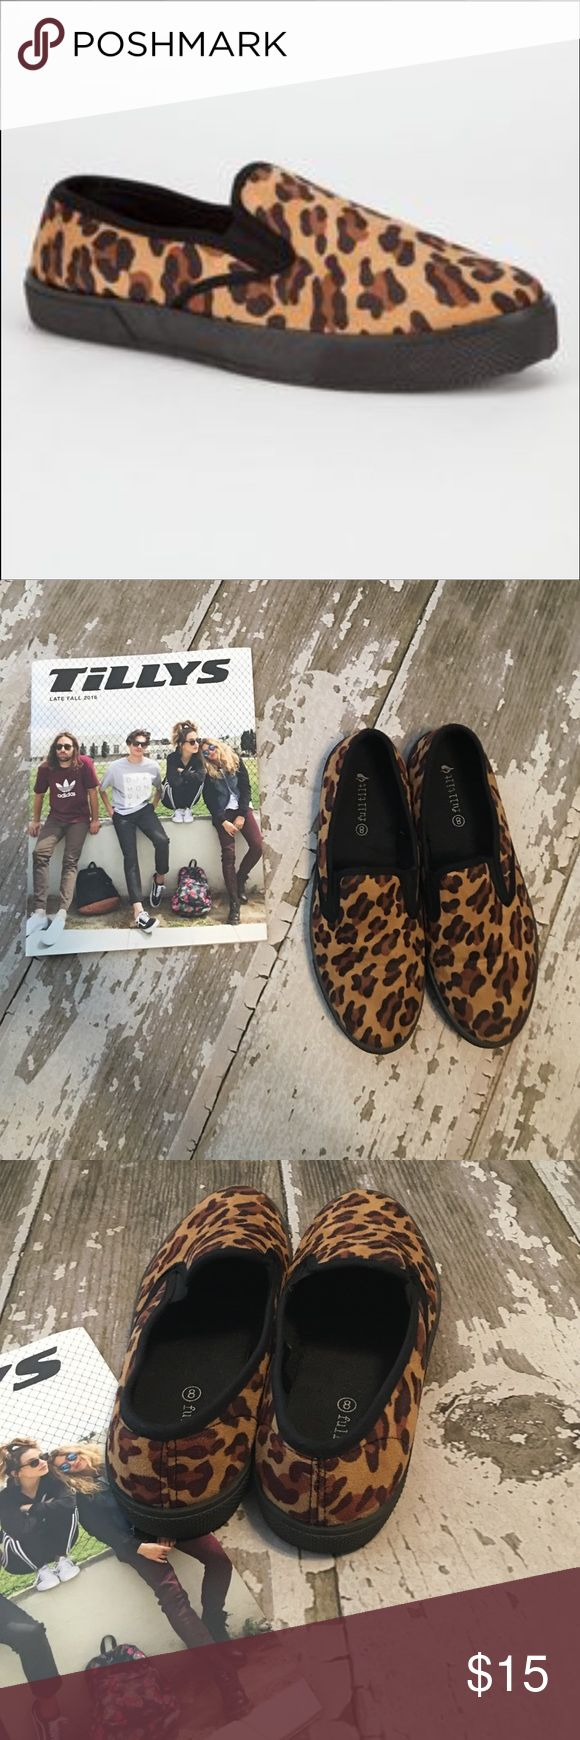 Suede Leopard Slip On Shoes I love these shoes but unfortunately a little too small for me, so they are practically new with no real signs of wear. Full Tilt Size 8 in Women. I will add a pic of the bottoms soon! ❤️ Tilly's Shoes Flats & Loafers